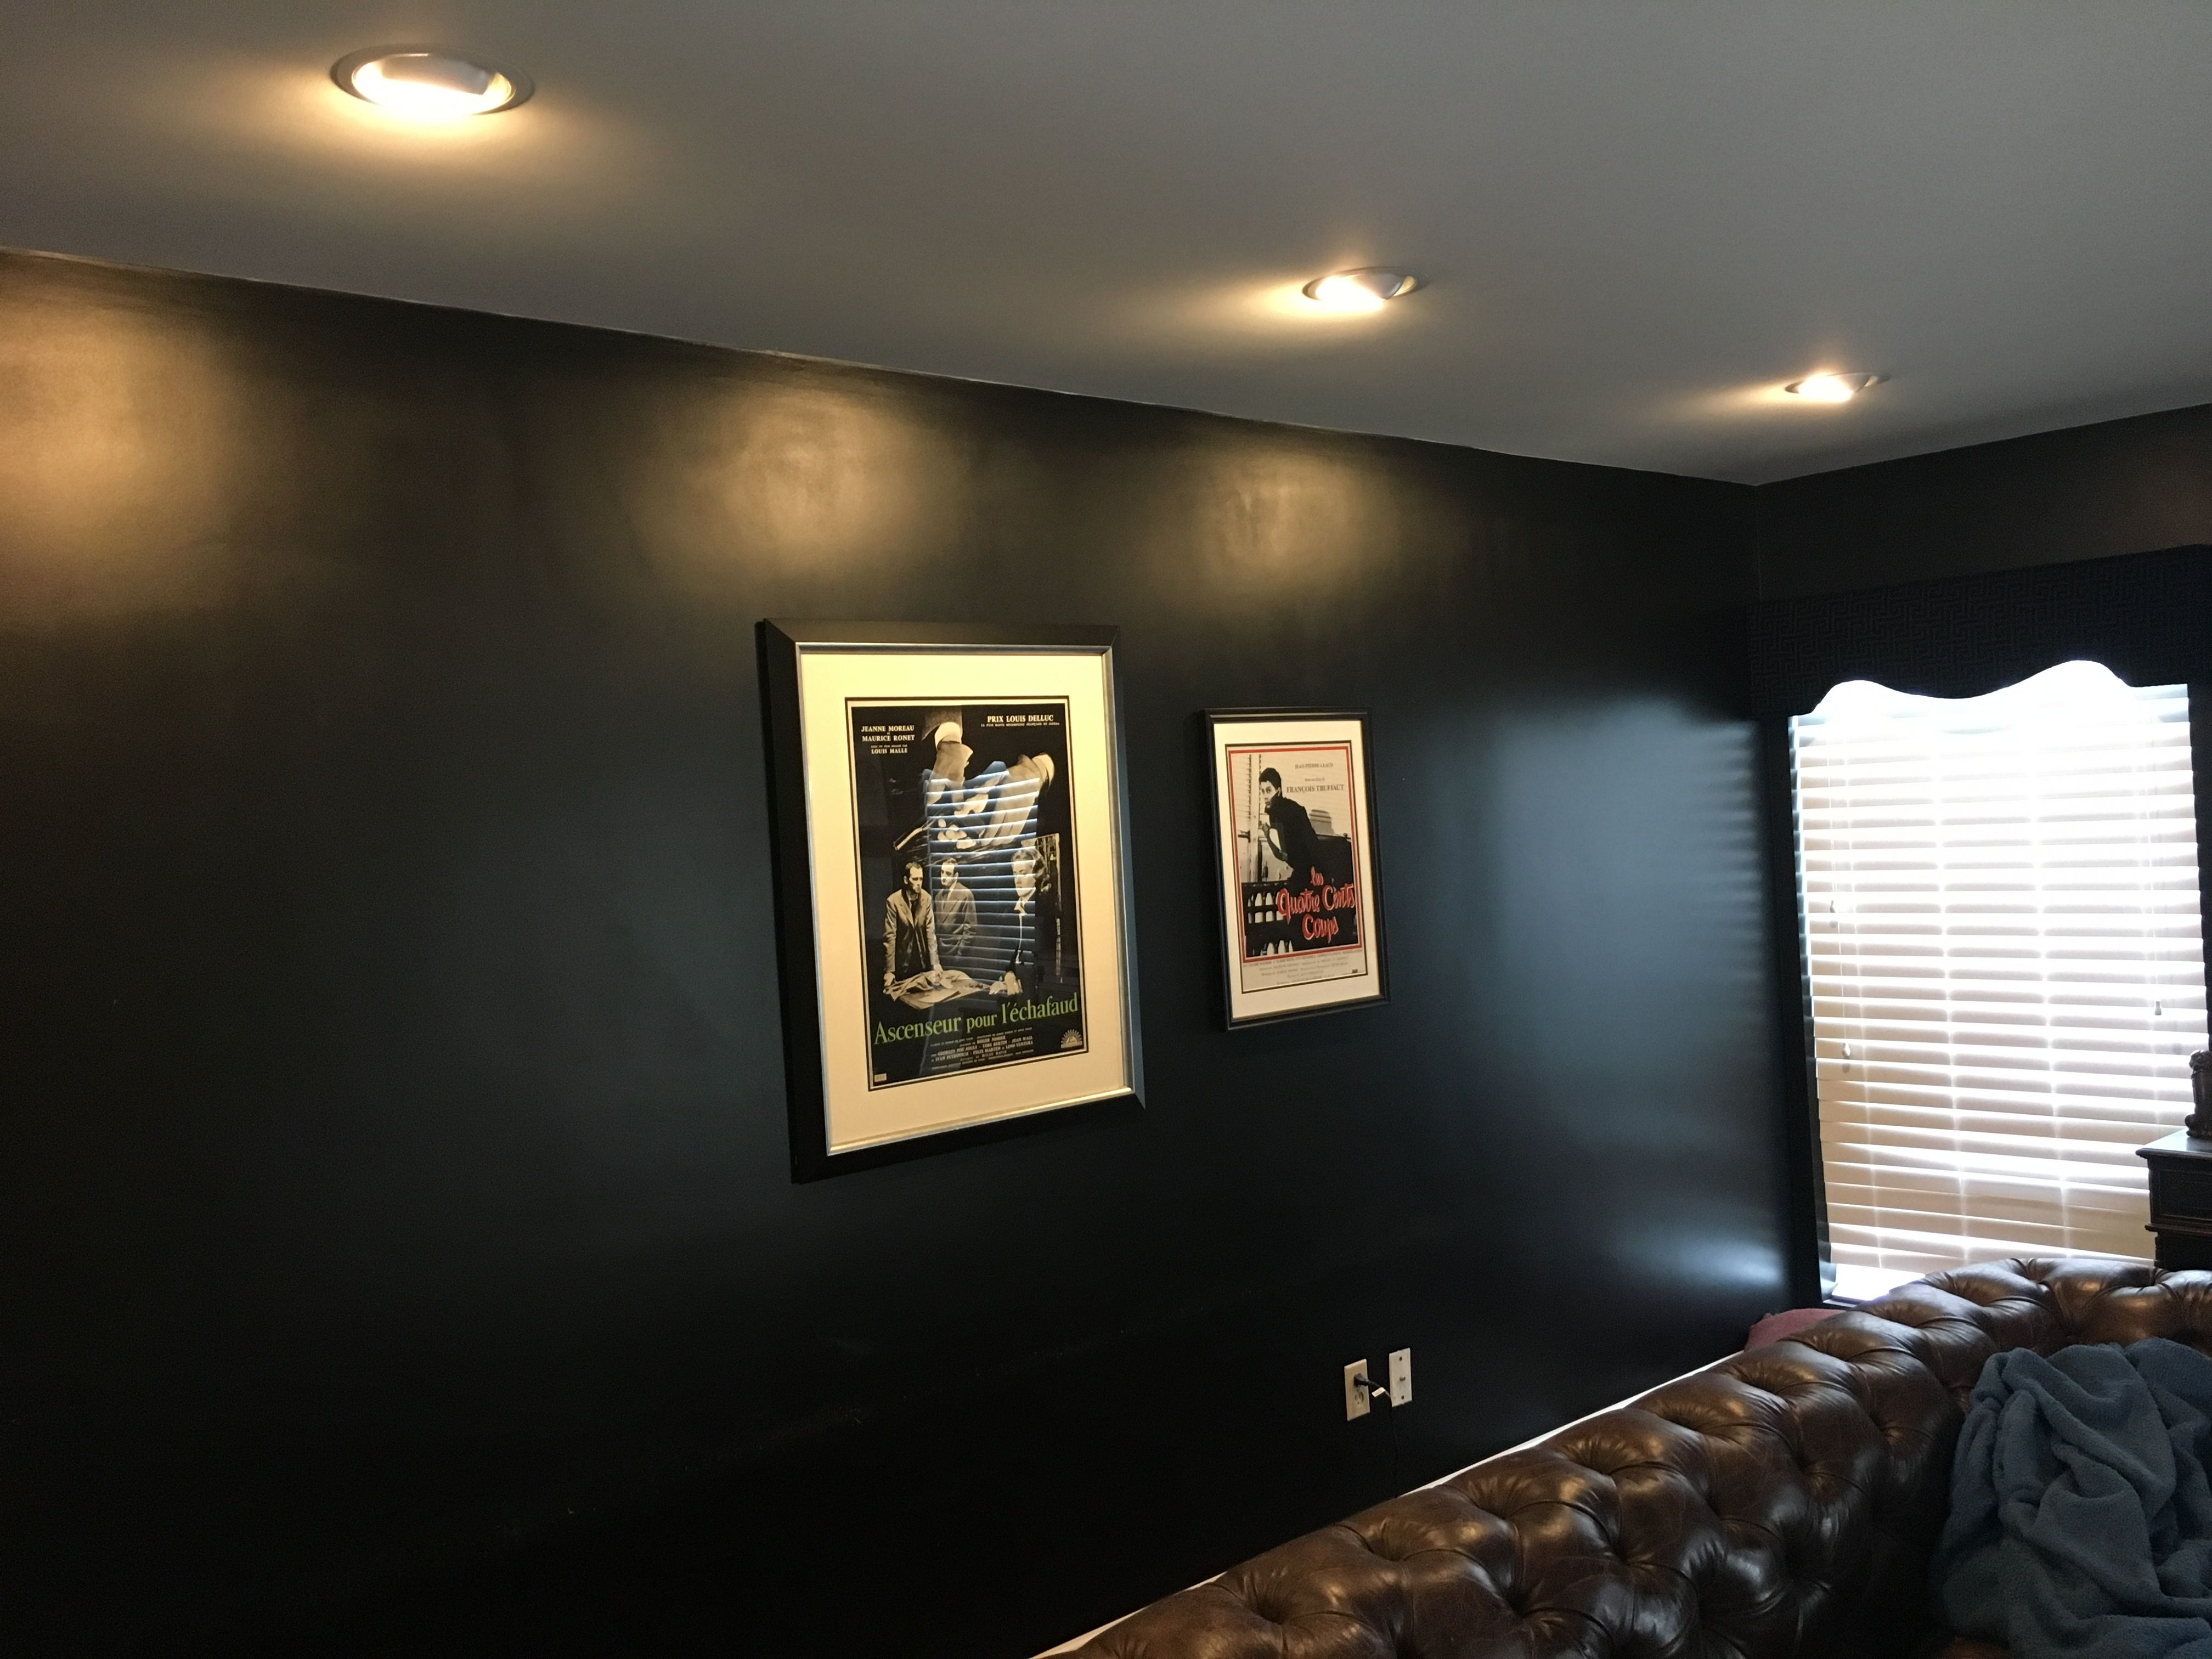 Installed 6 Recessed Directional Lights With Phillips Hue Color Changing Lights For Customers Artwork Led Can Lights Recessed Lighting Can Lights